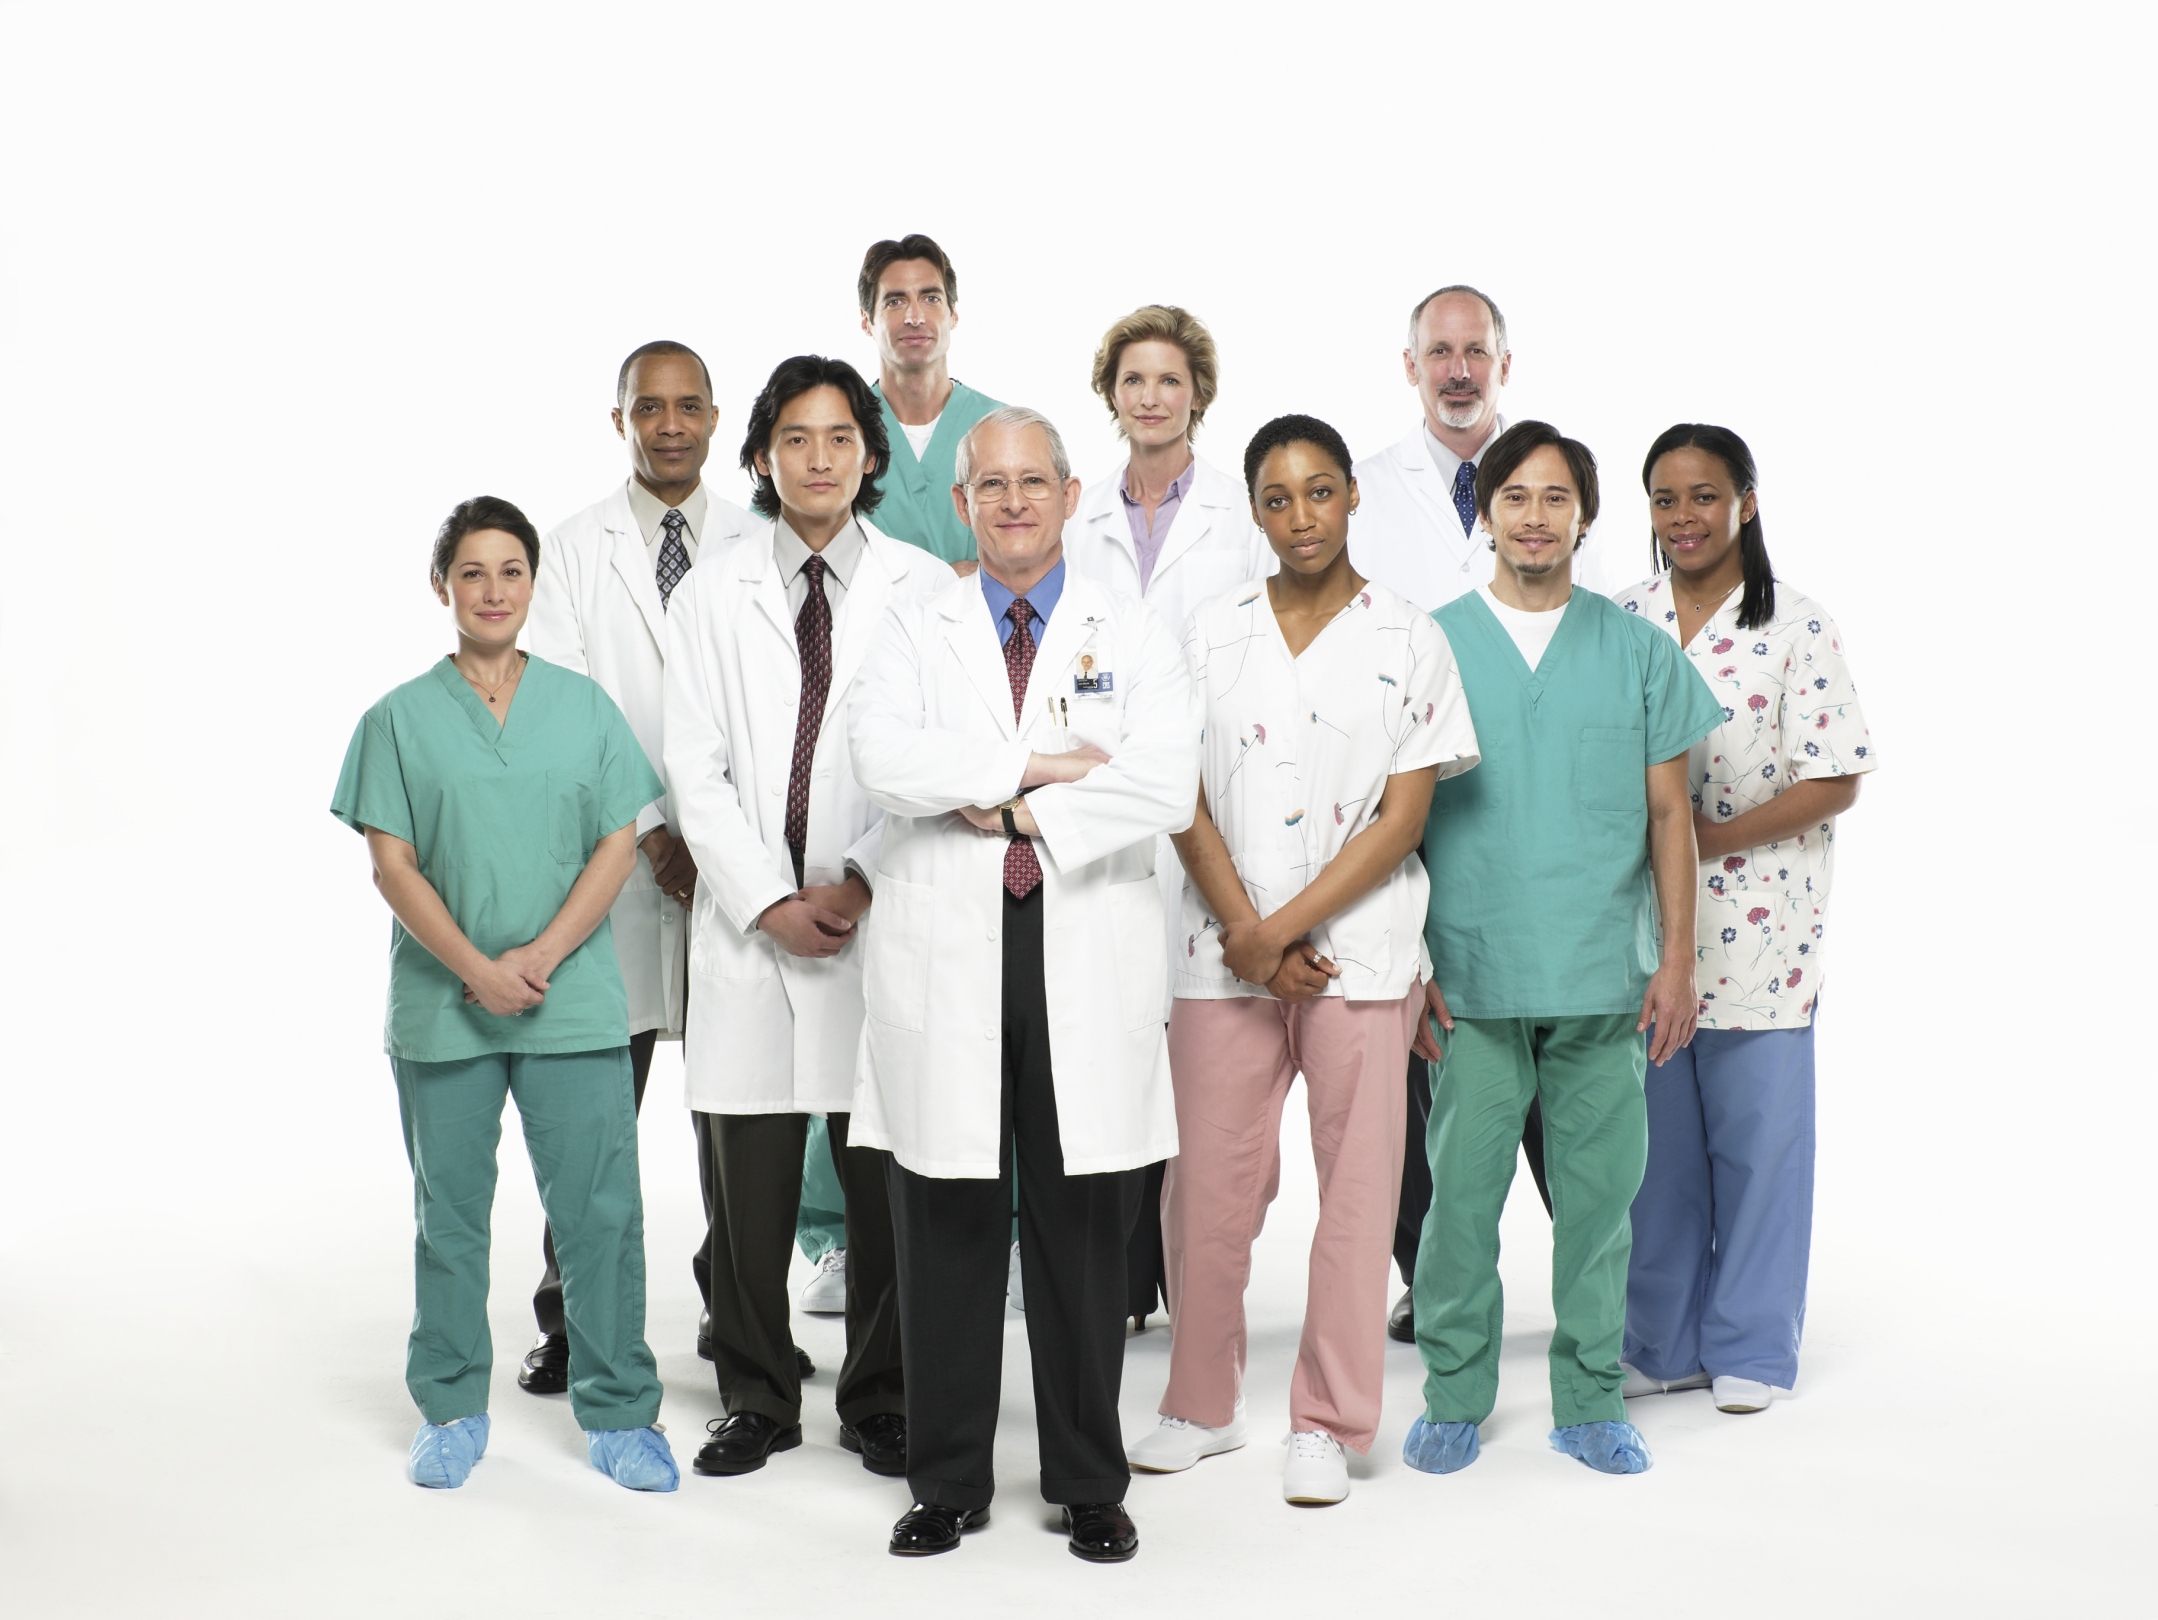 Can You Get Certified As a Phlebotomist With a Criminal Record